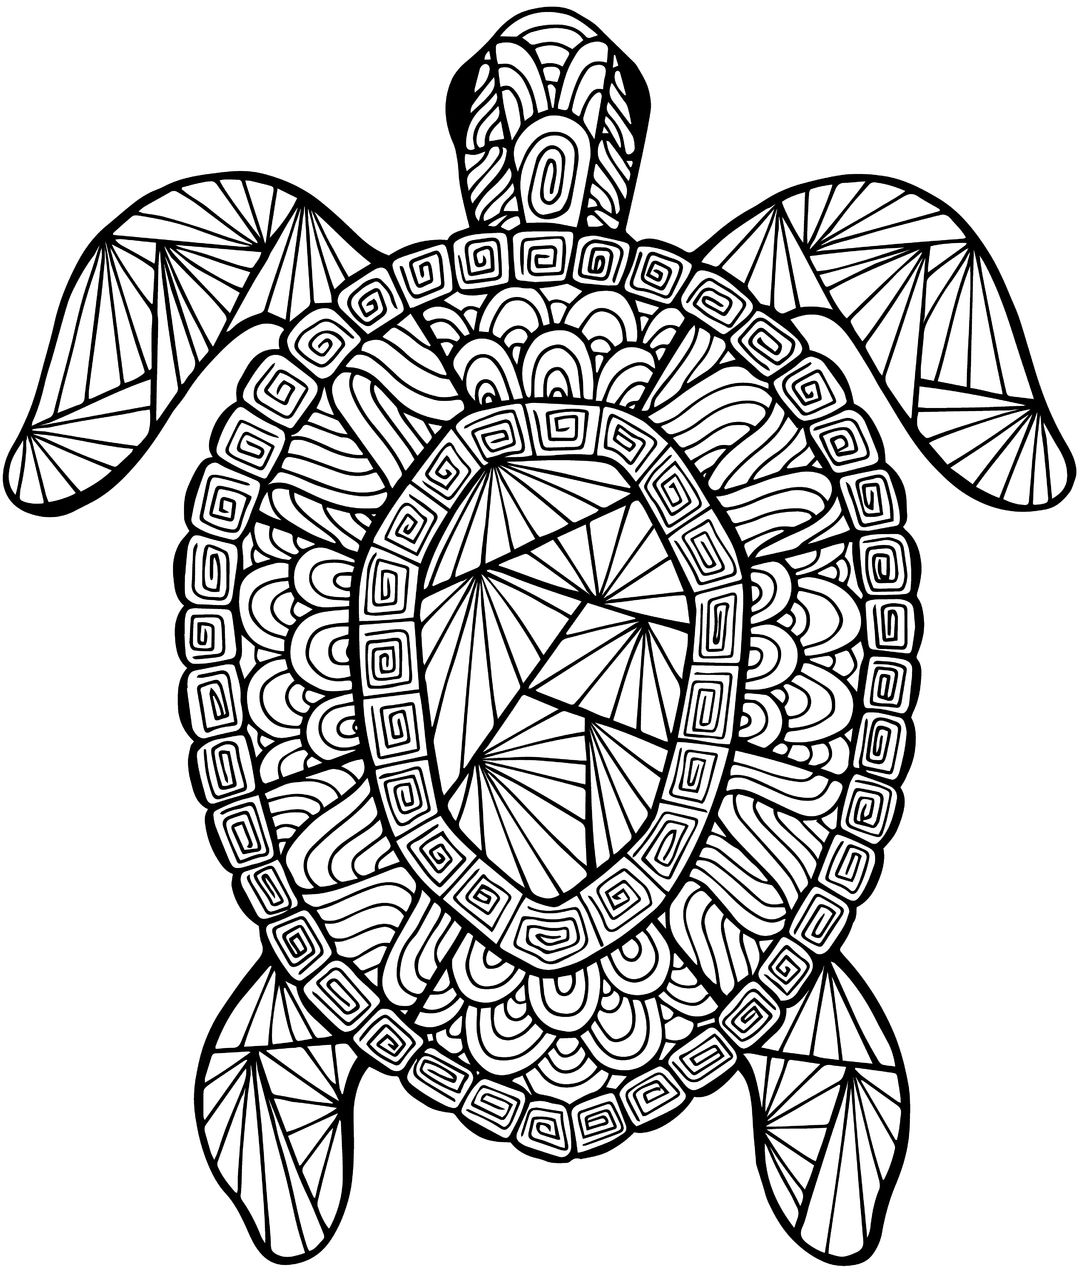 coloring pages advanced - photo#8